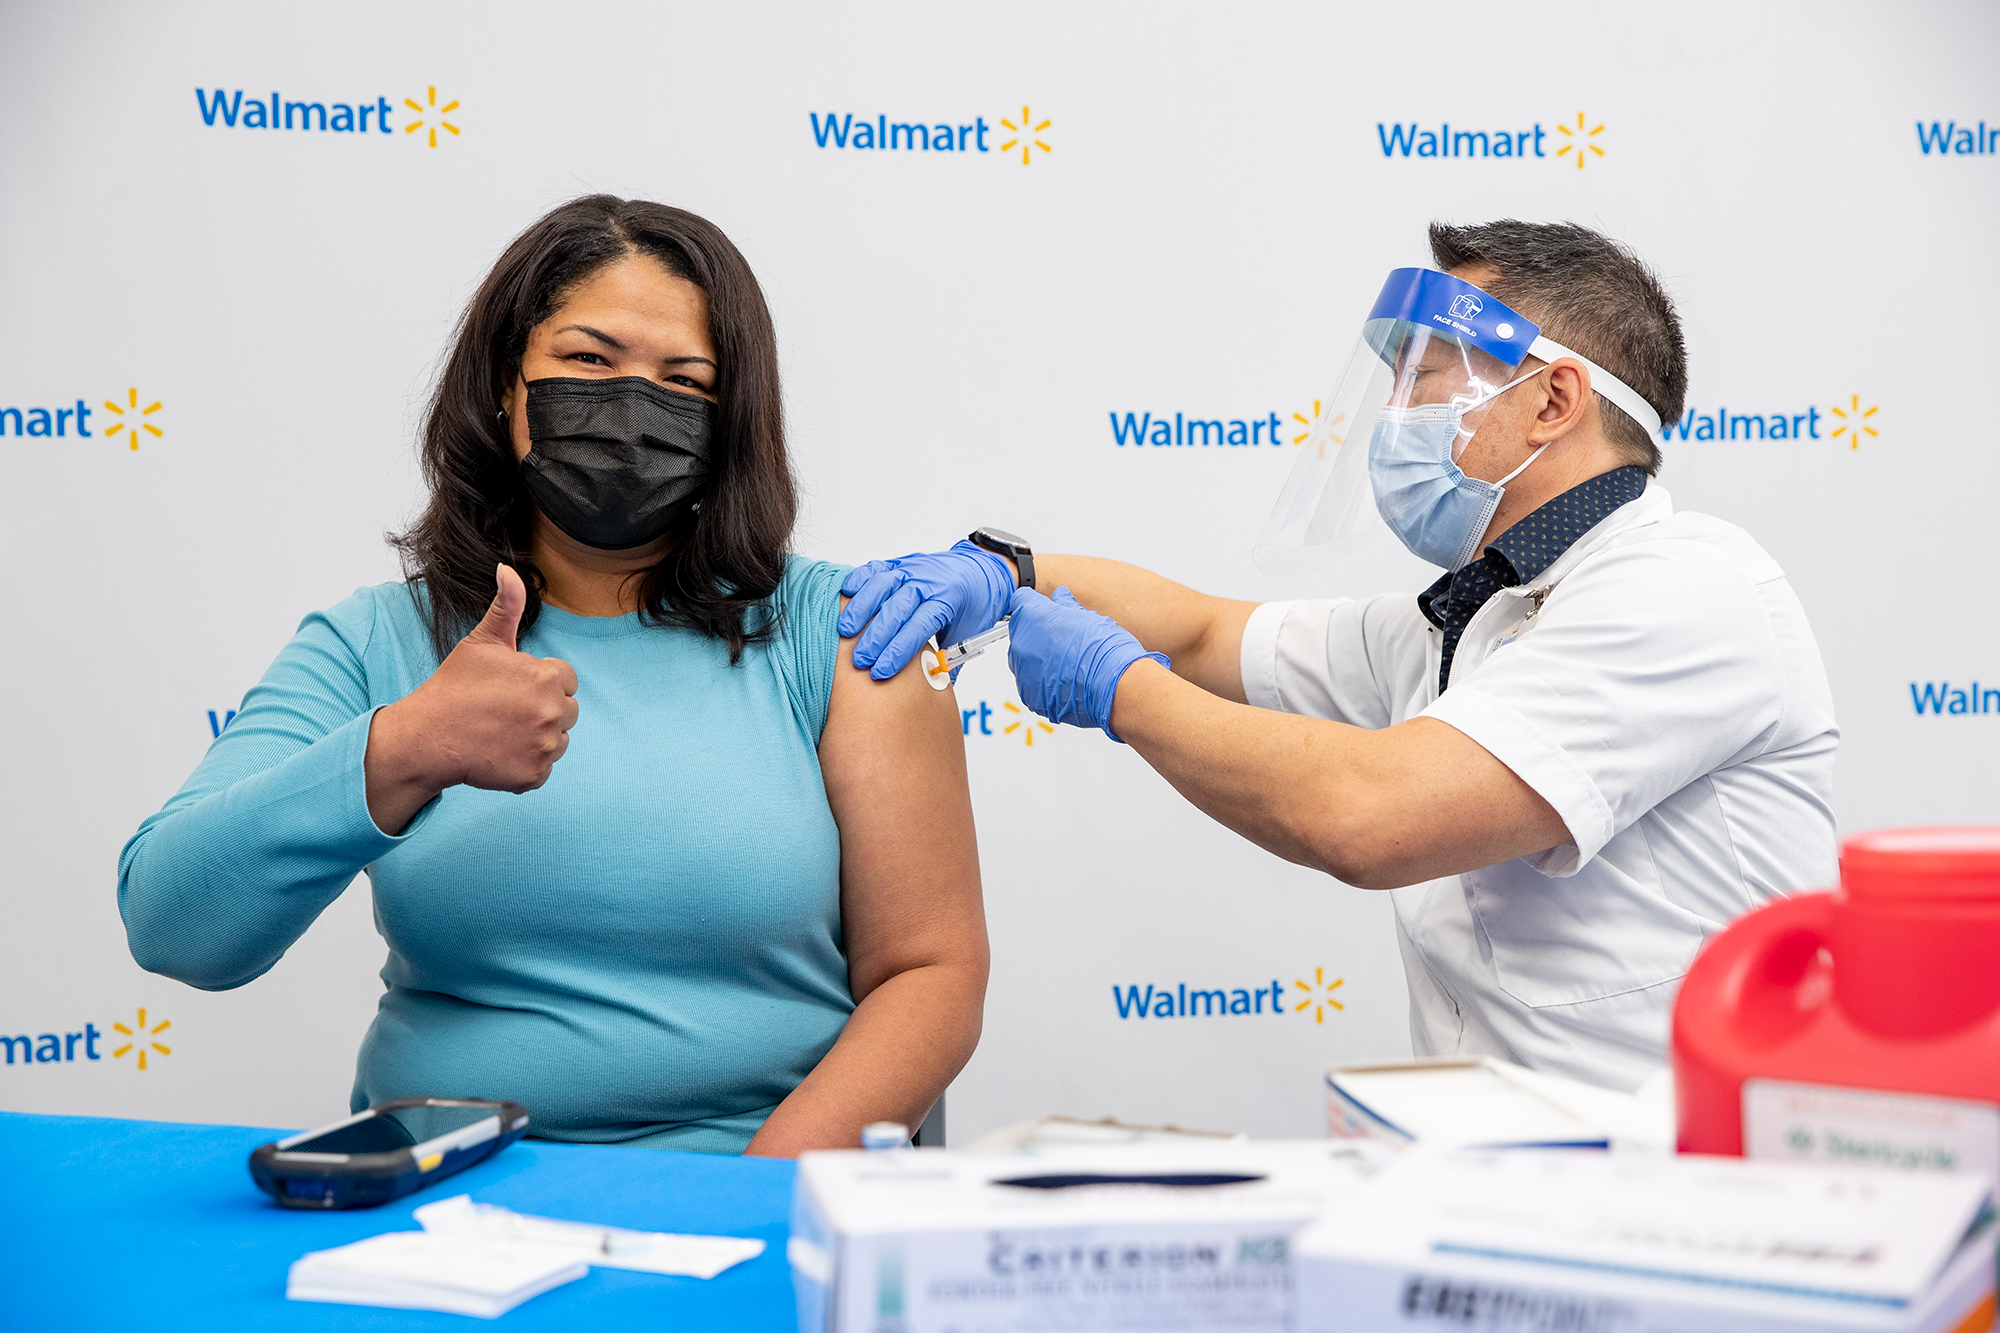 Customer receiving COVID-19 vaccine at Walmart